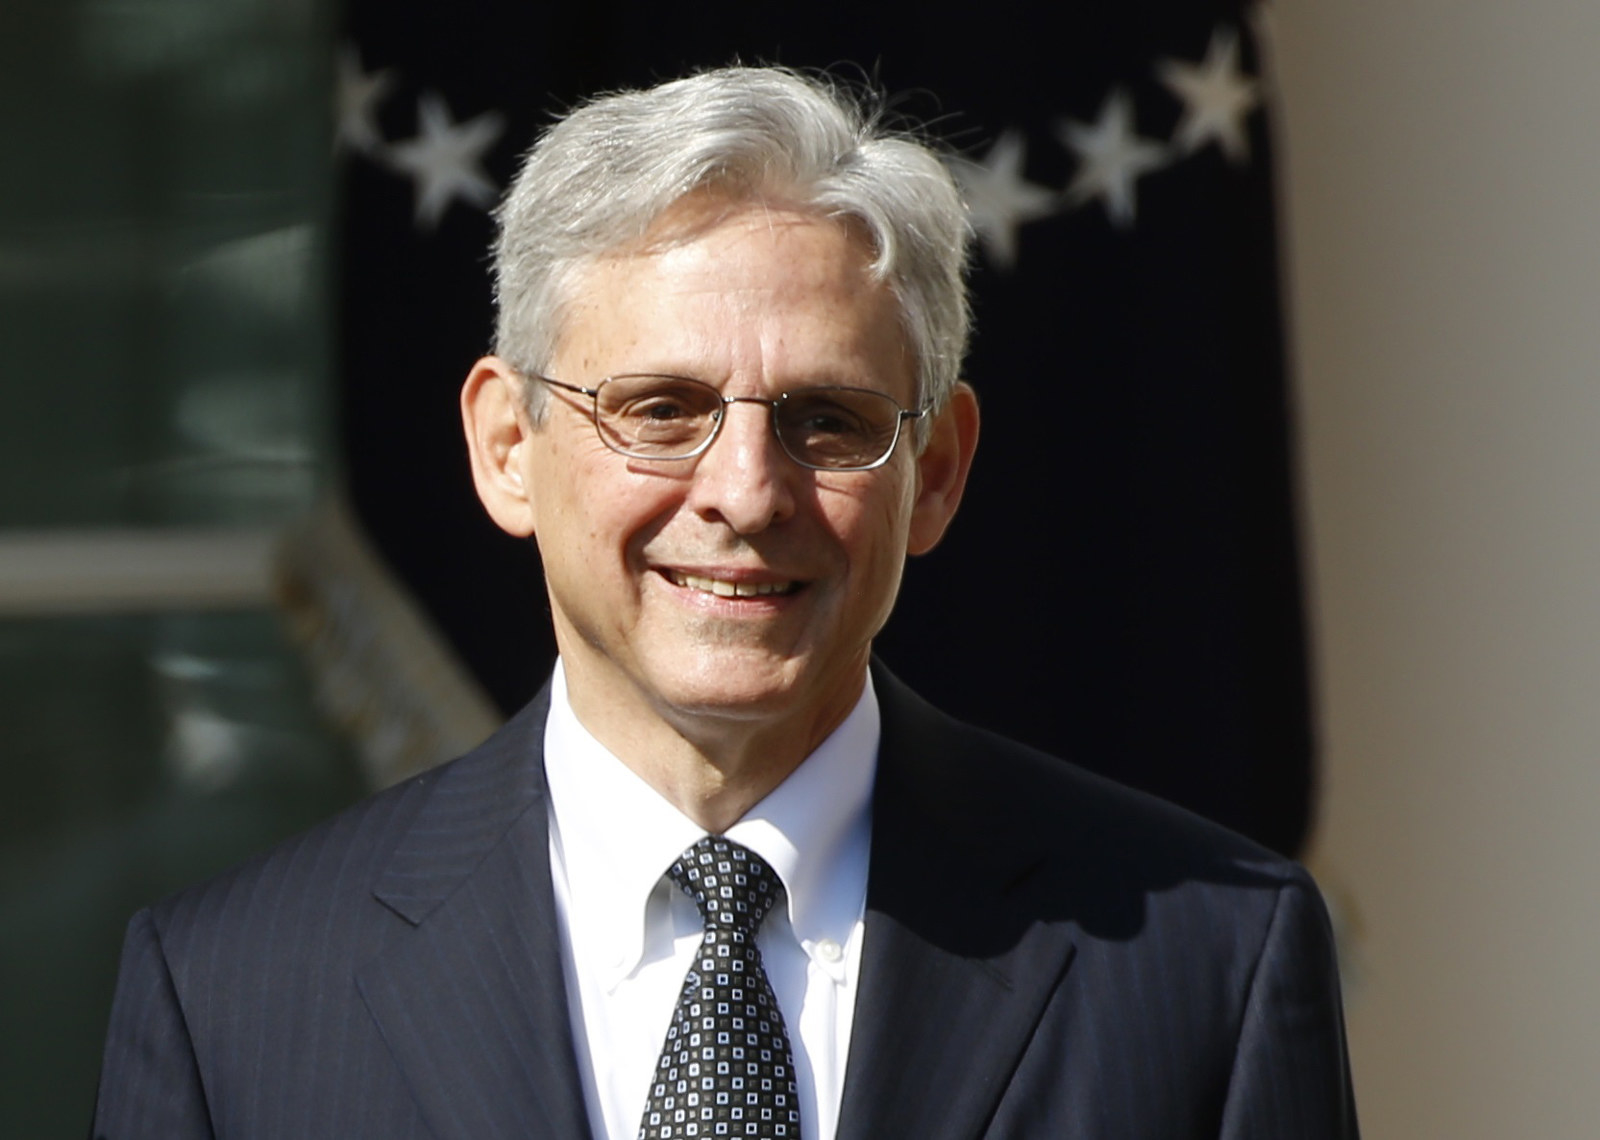 Merrick Garland Has Recused Himself From The Ethics Complaints Against Brett Kavanaugh